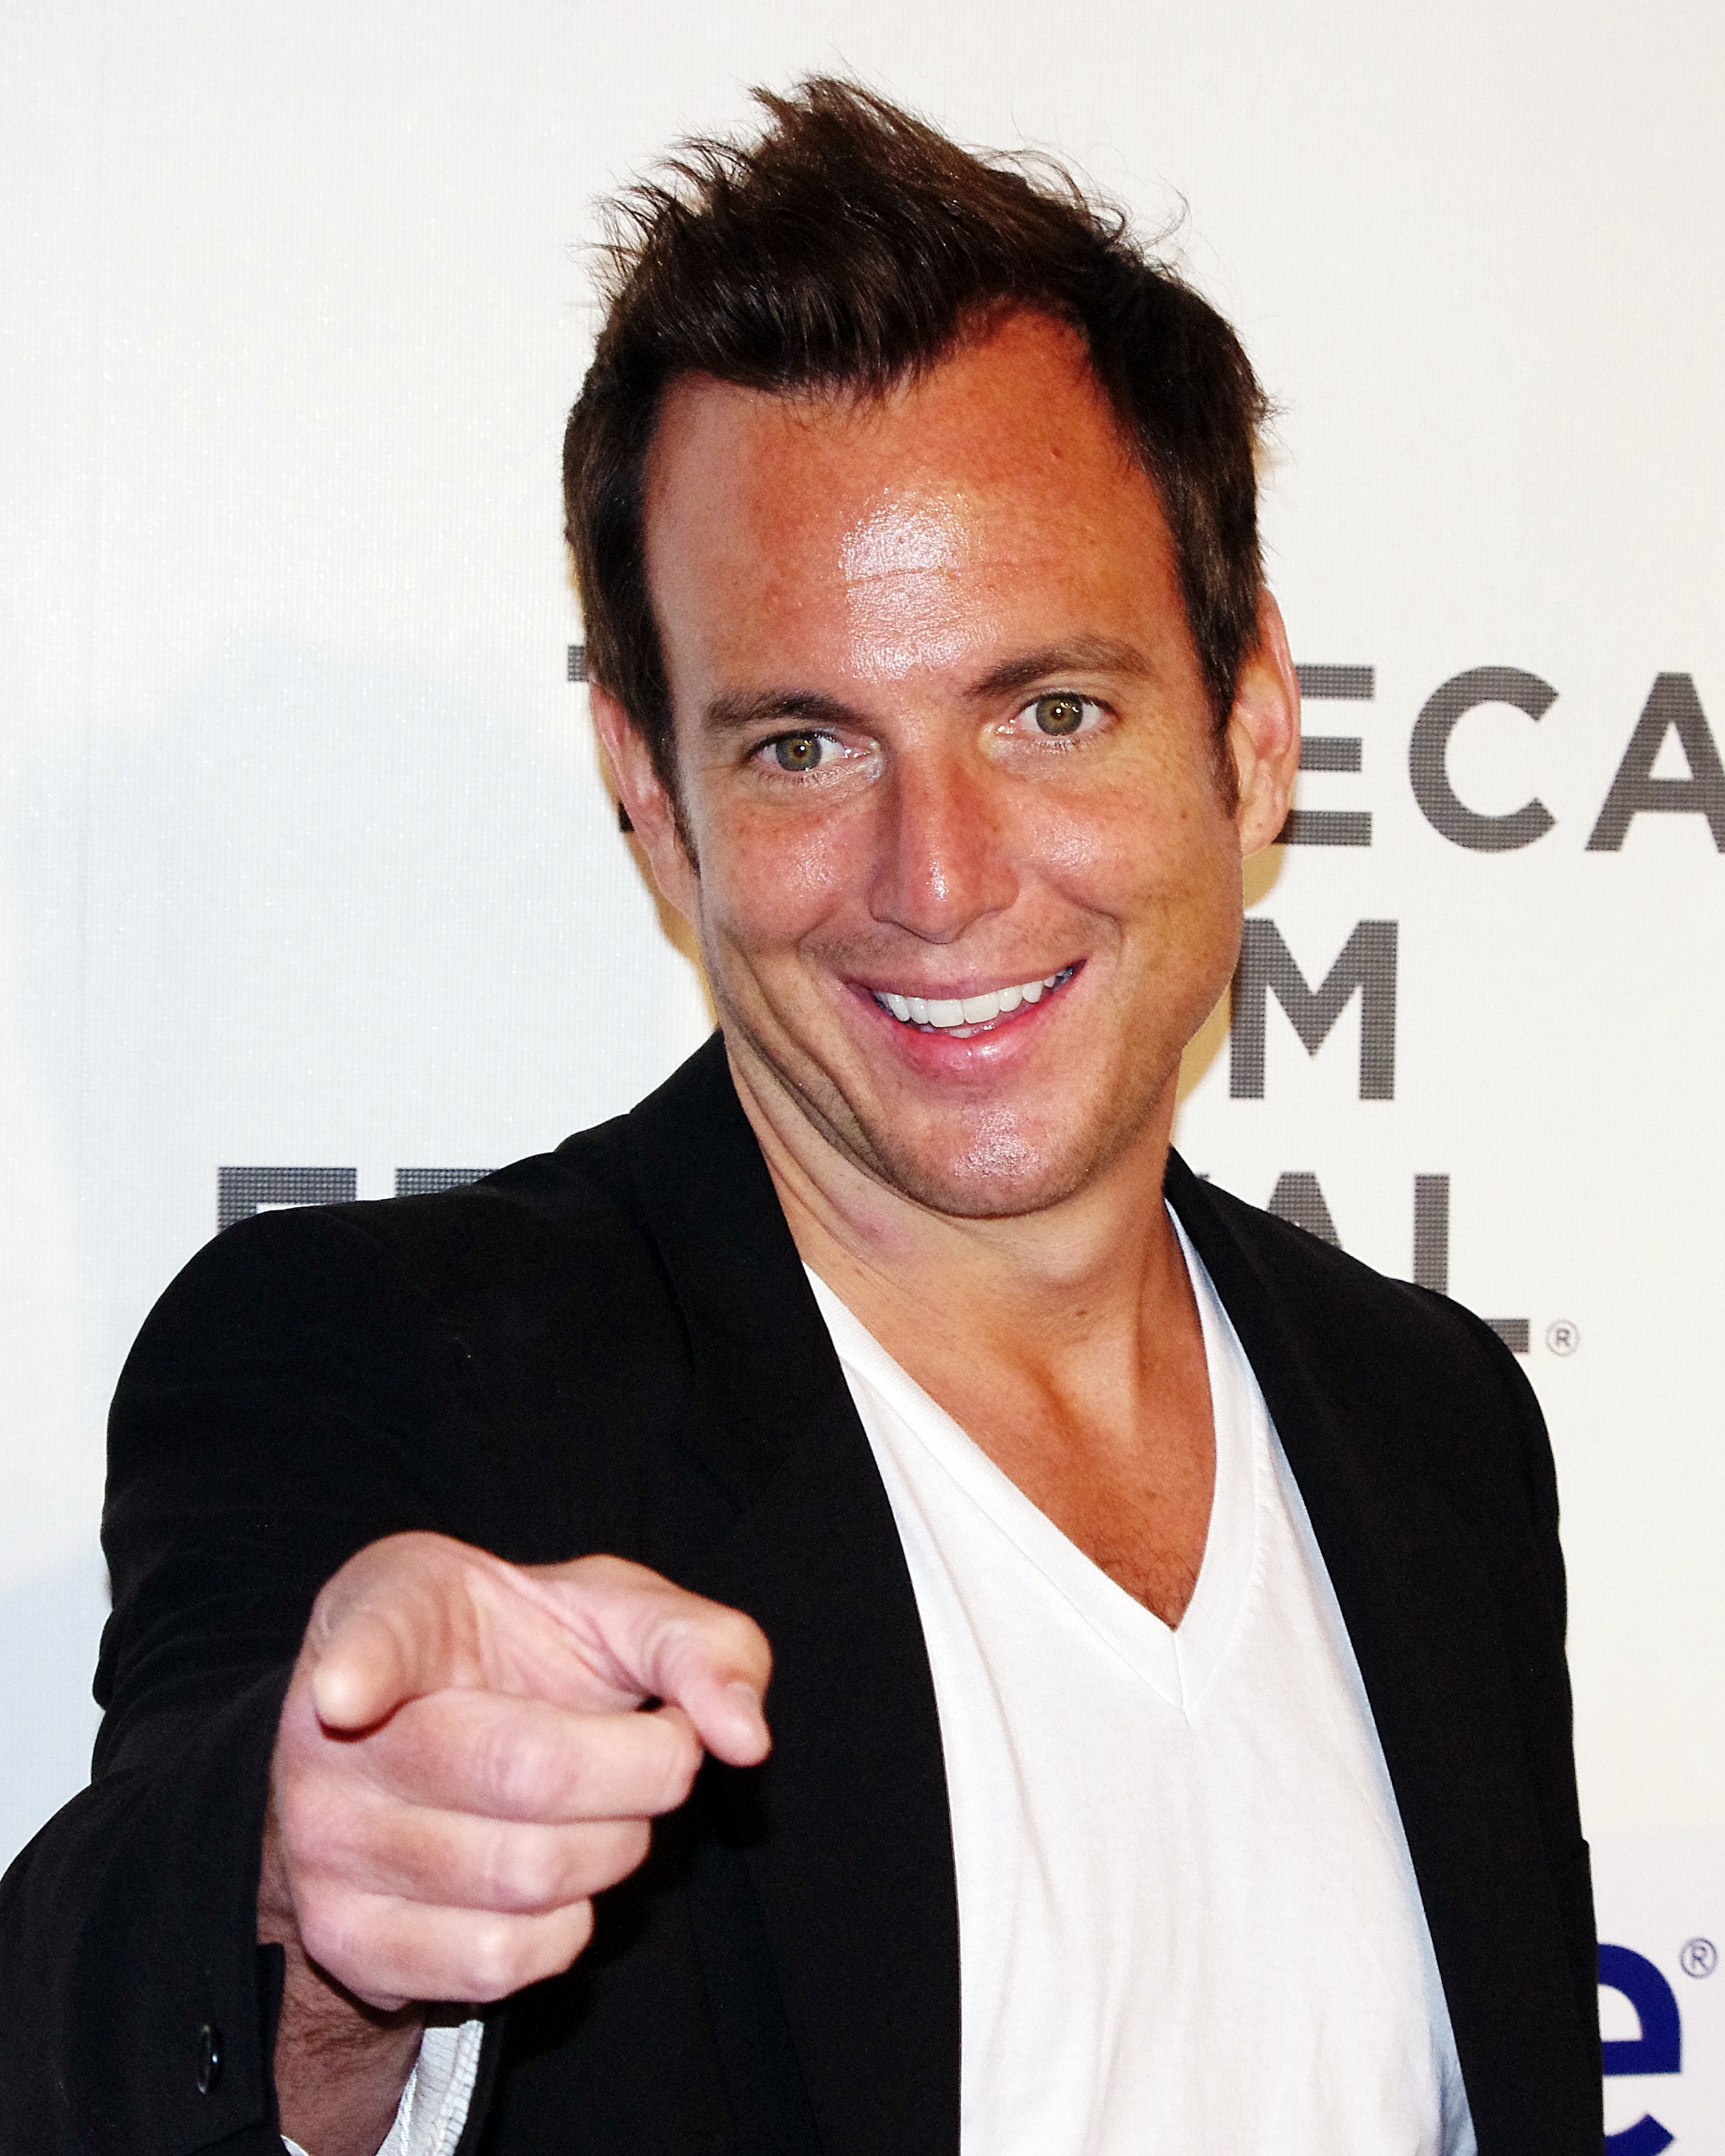 Will Arnett earned a  million dollar salary, leaving the net worth at 12 million in 2017